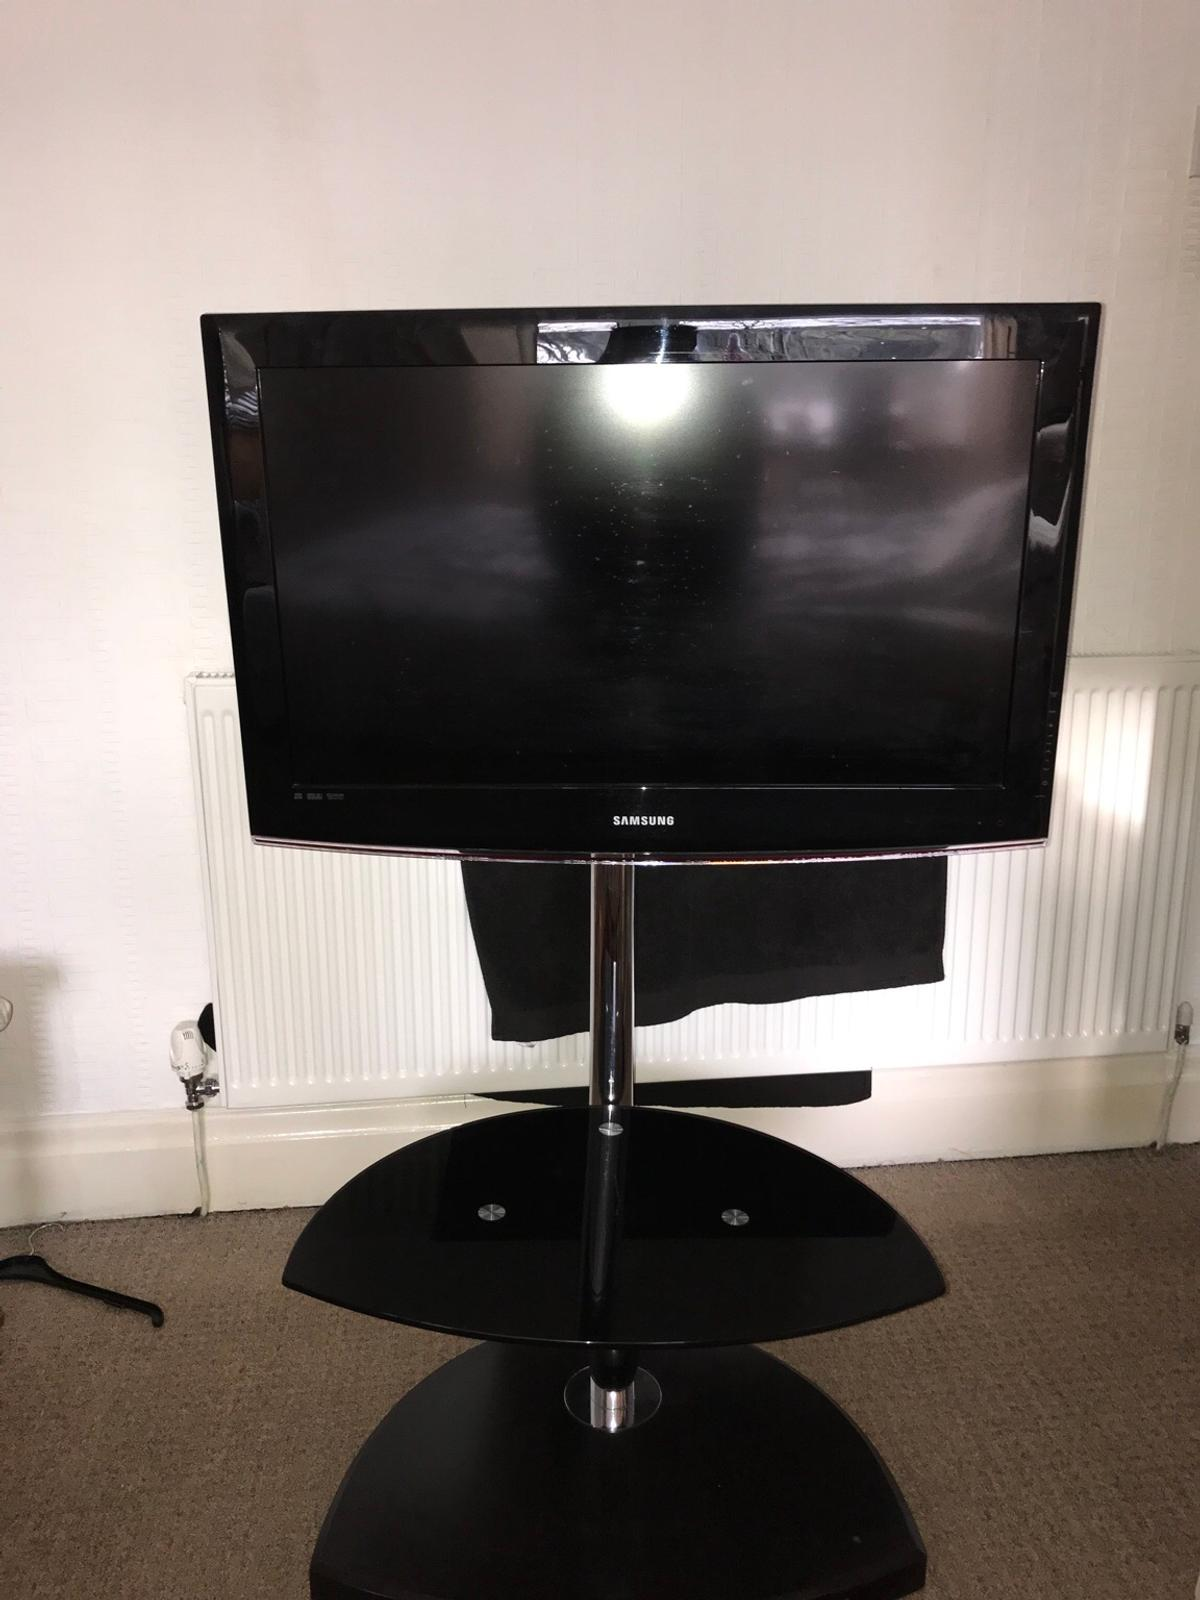 Freestanding Tv Stand With Glass Shelf In Pr5 Preston For 50 00 For Sale Shpock